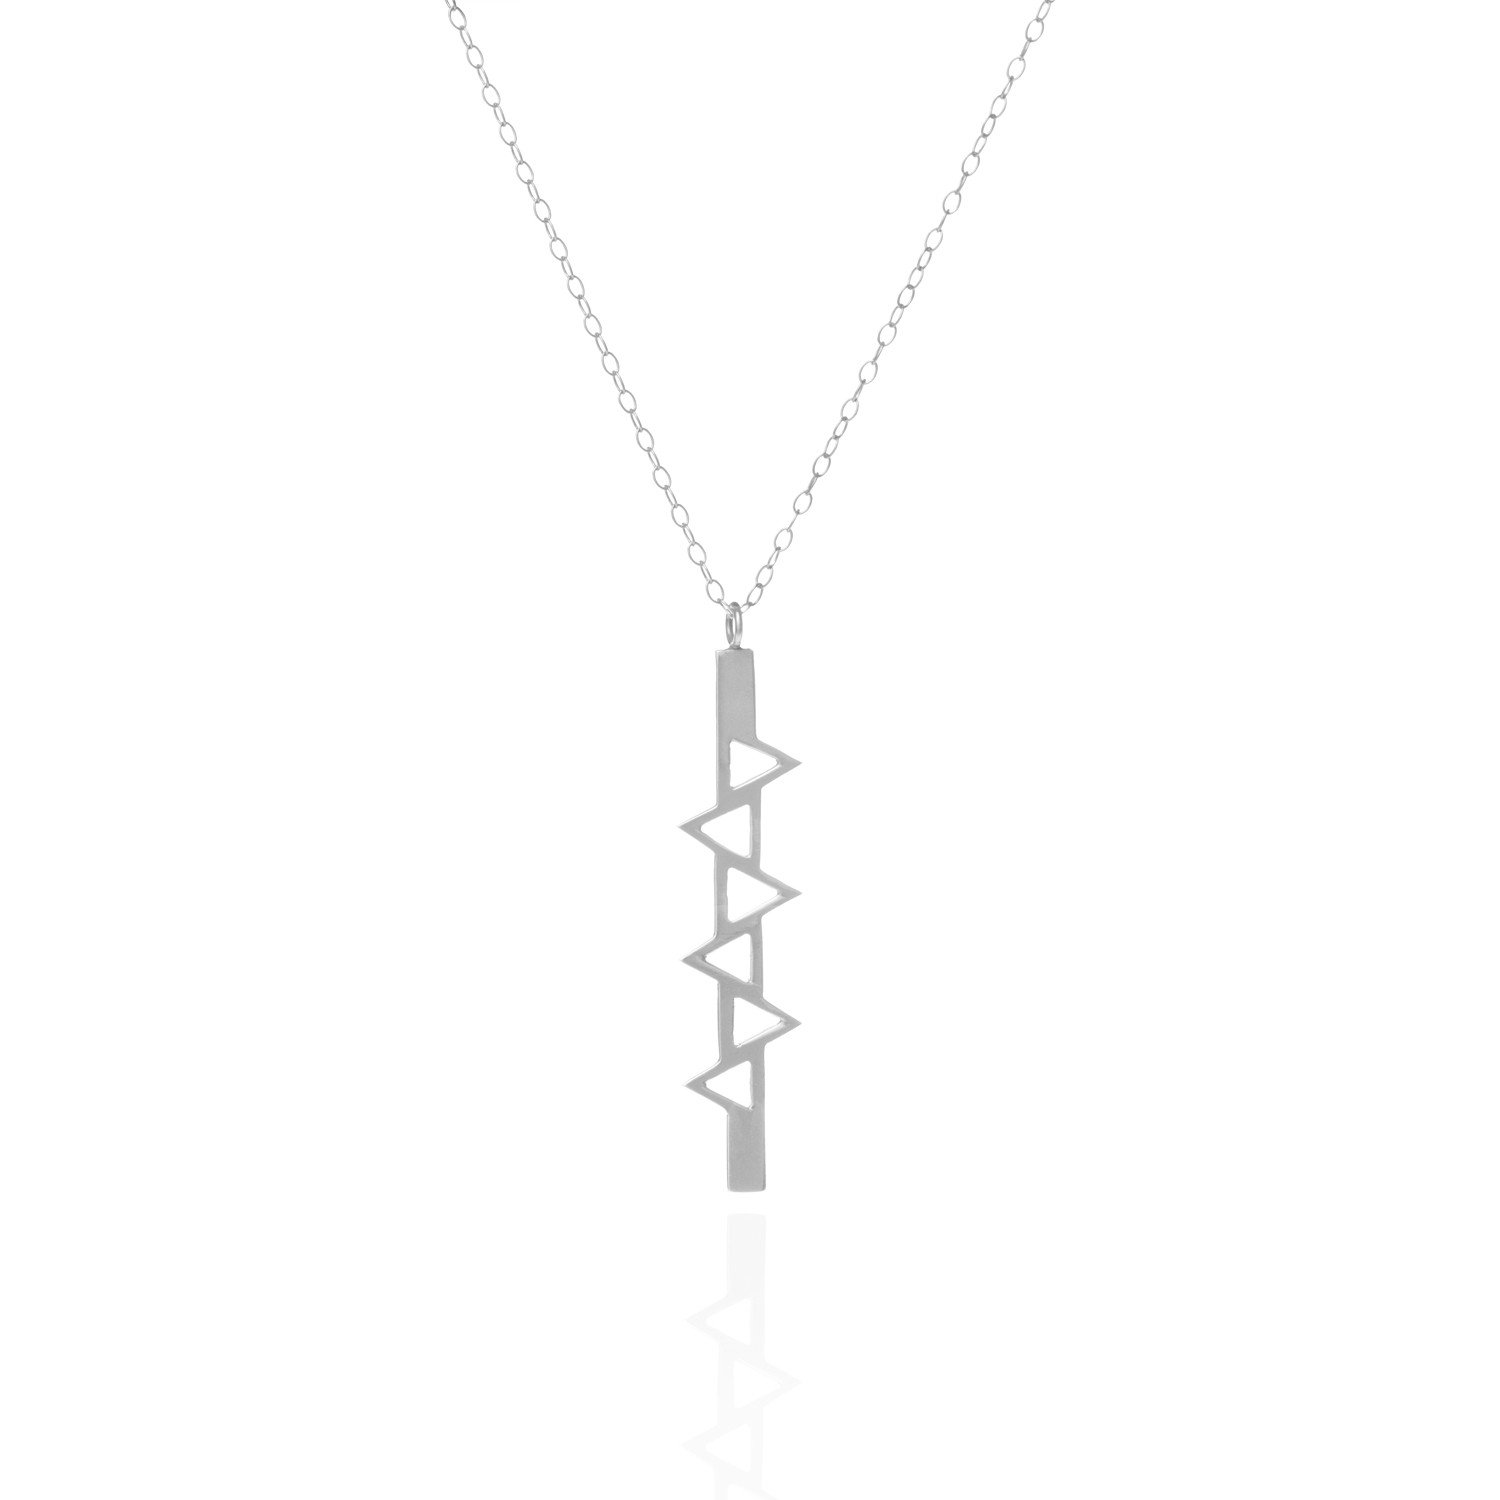 Ladder of Life, Long Silver Pendant by Sally Lane Jewellery on curated-crowd.com